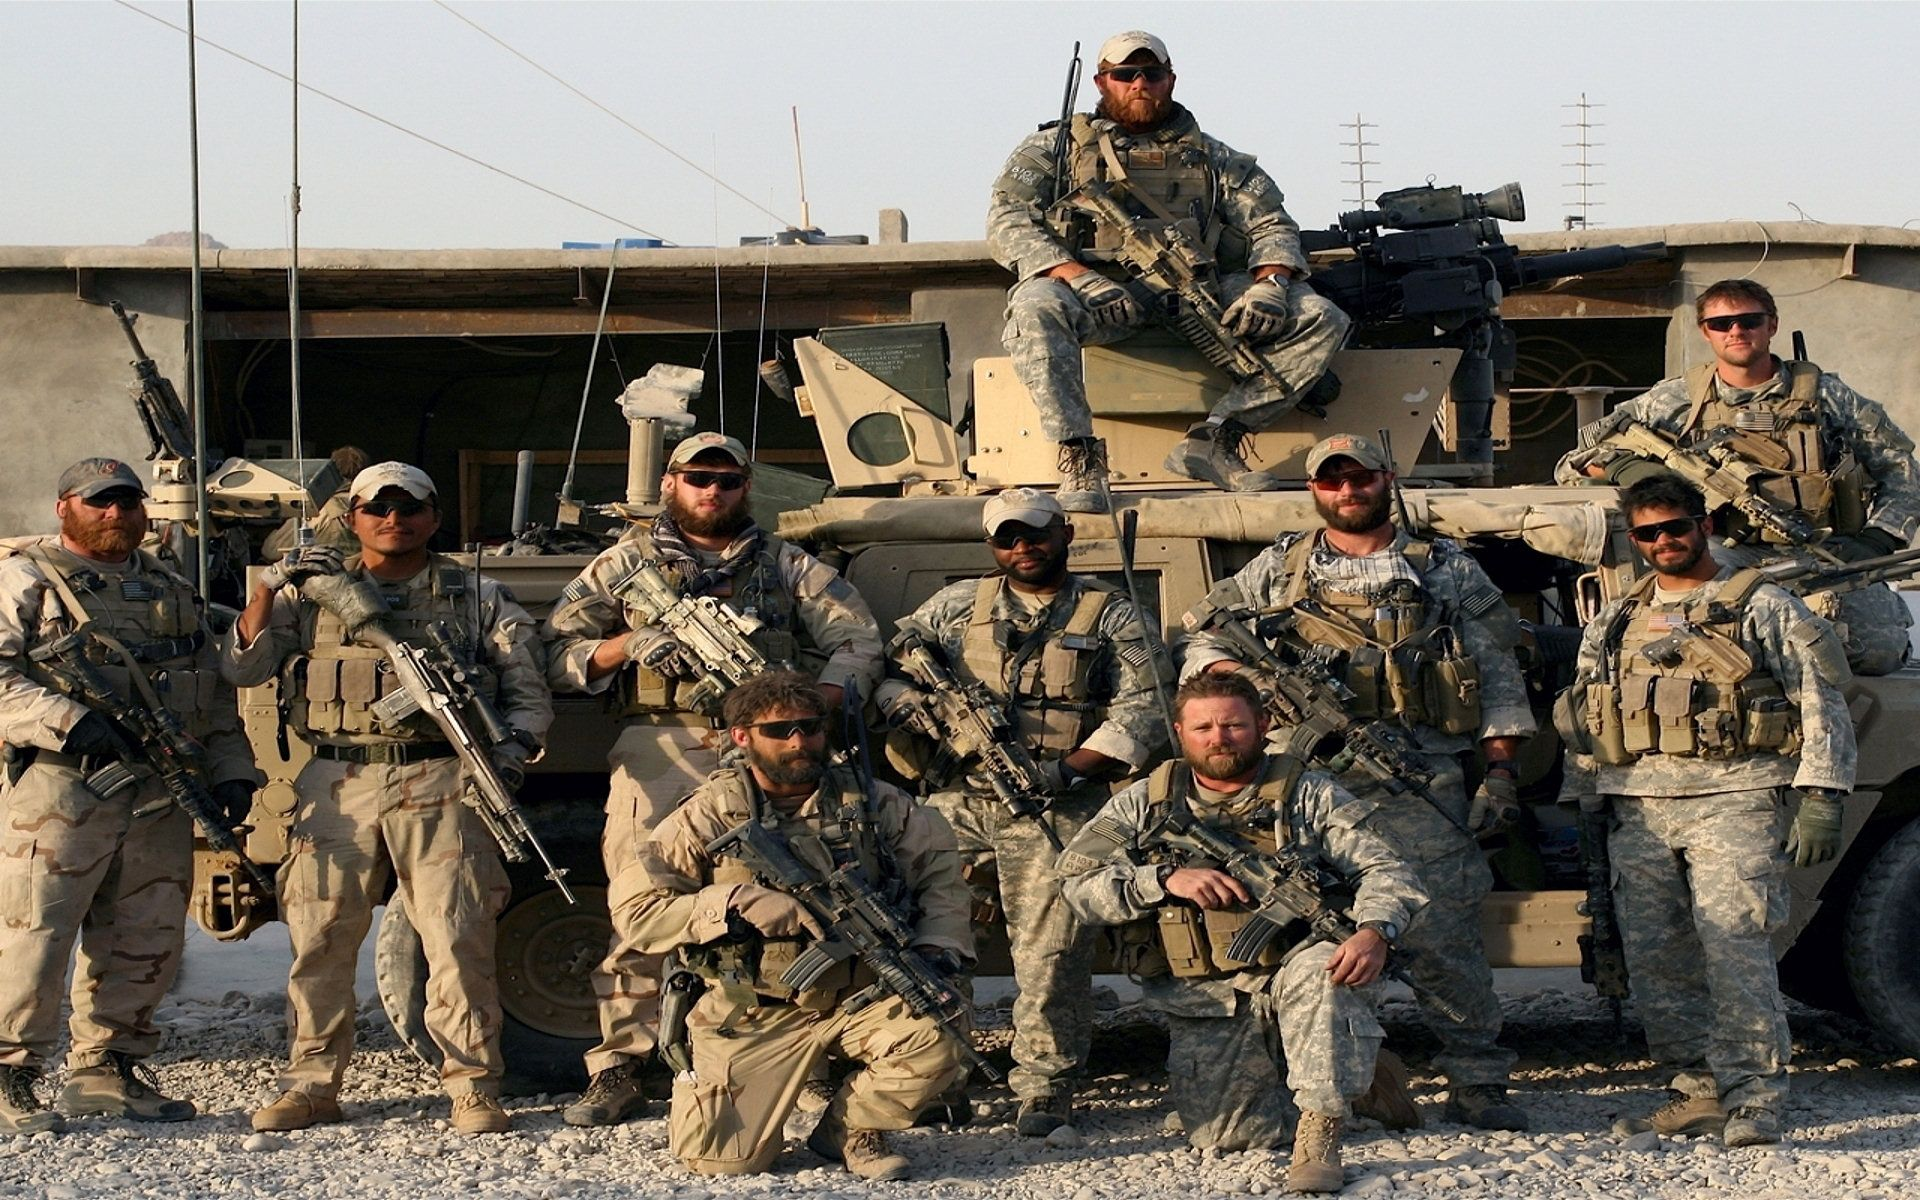 US Army Special Forces, Afghanistan | History | Pinterest